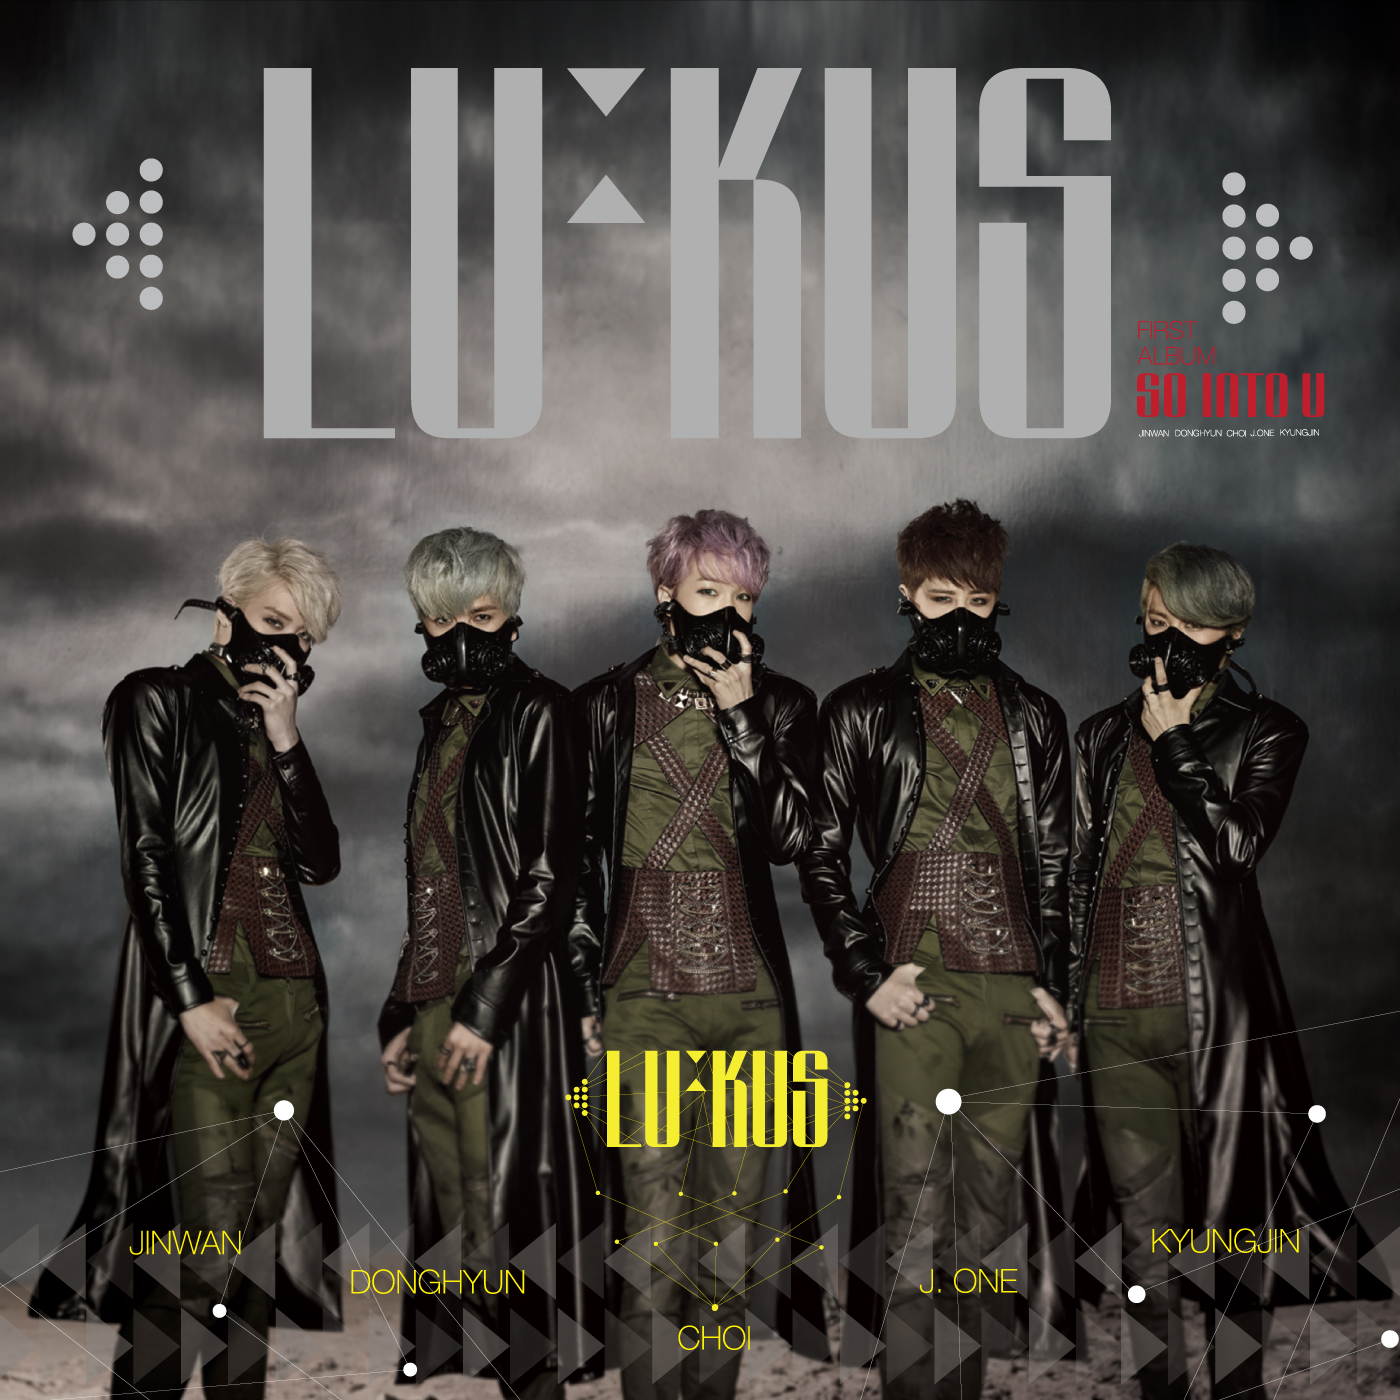 Lau formerly lukus whos who discography kpopinfo114 the members of lukus in the so into solutioingenieria Gallery